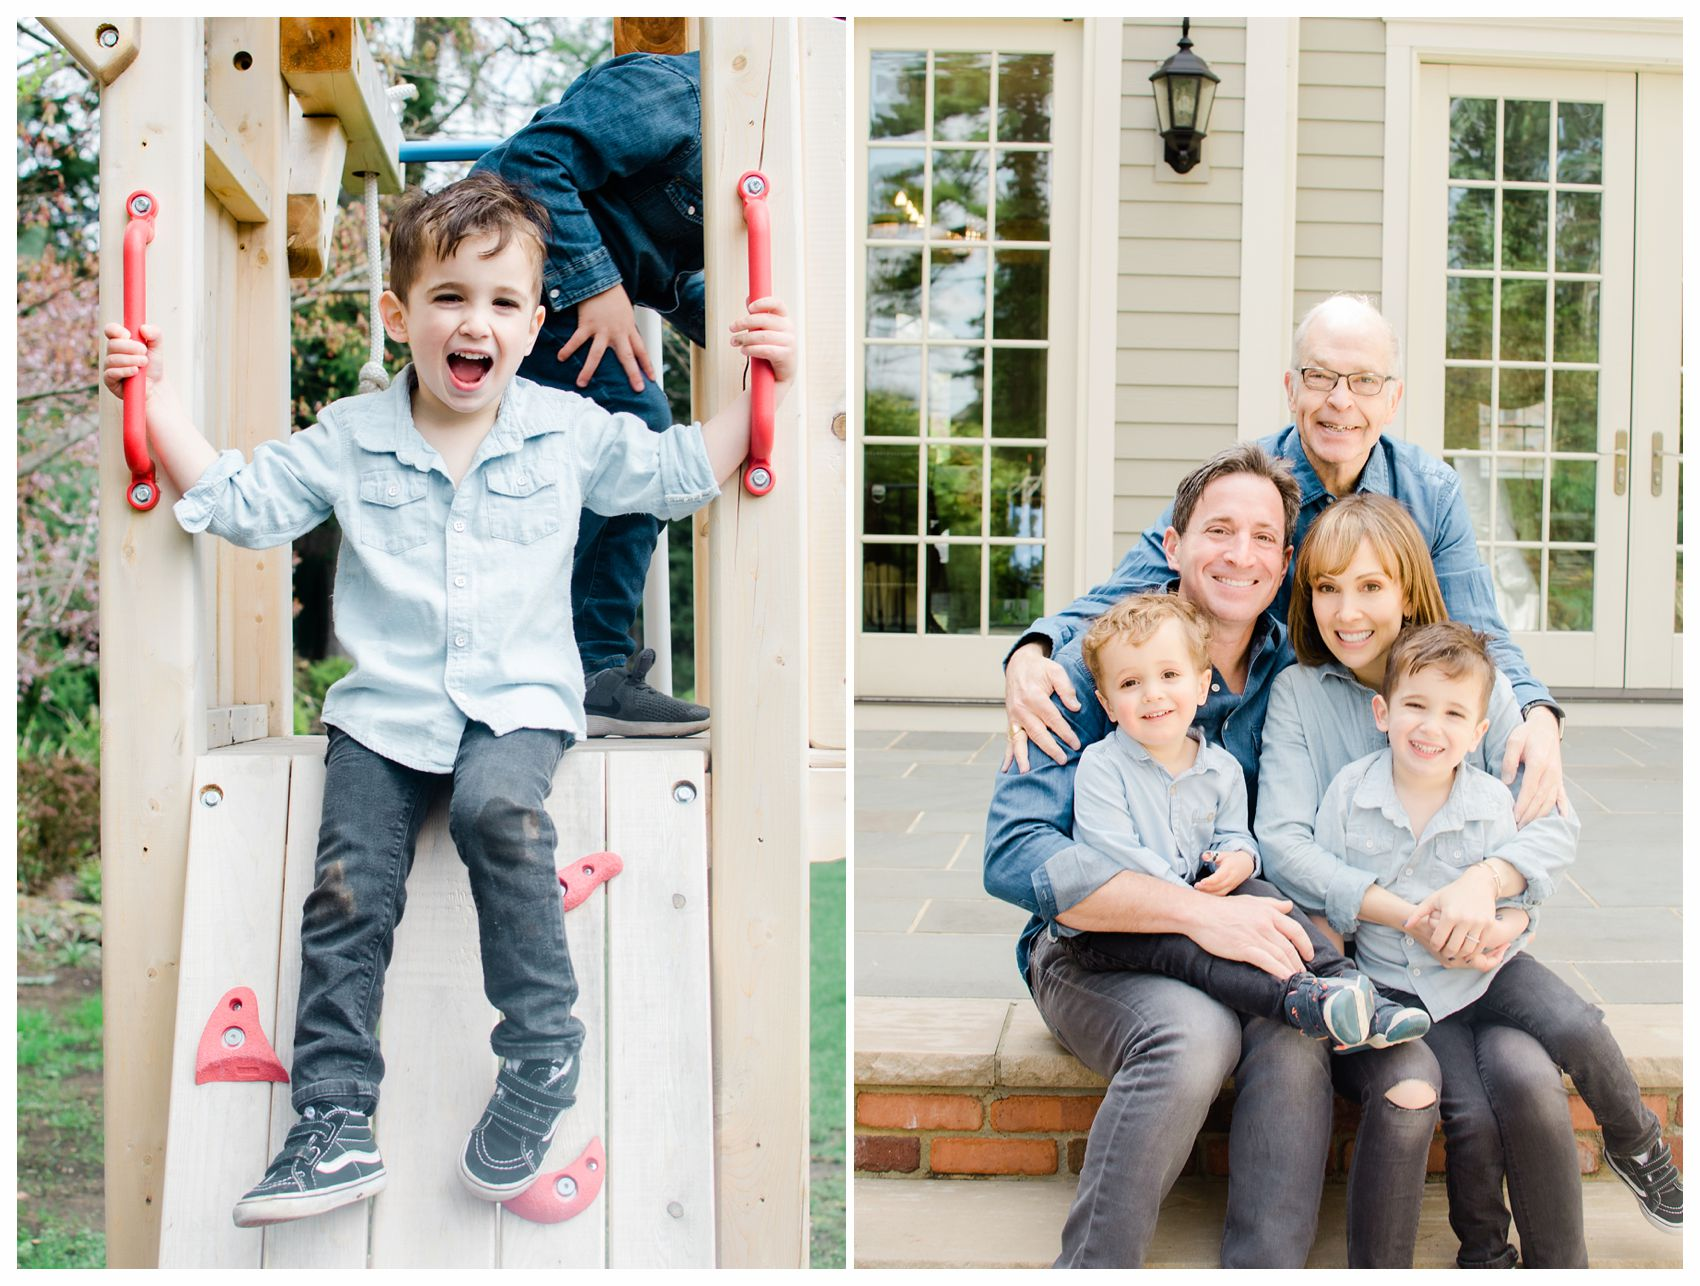 little boy having fun at the playground and family is sitting on the porch with grandfather in extended family session taken by NYC Family Photographer